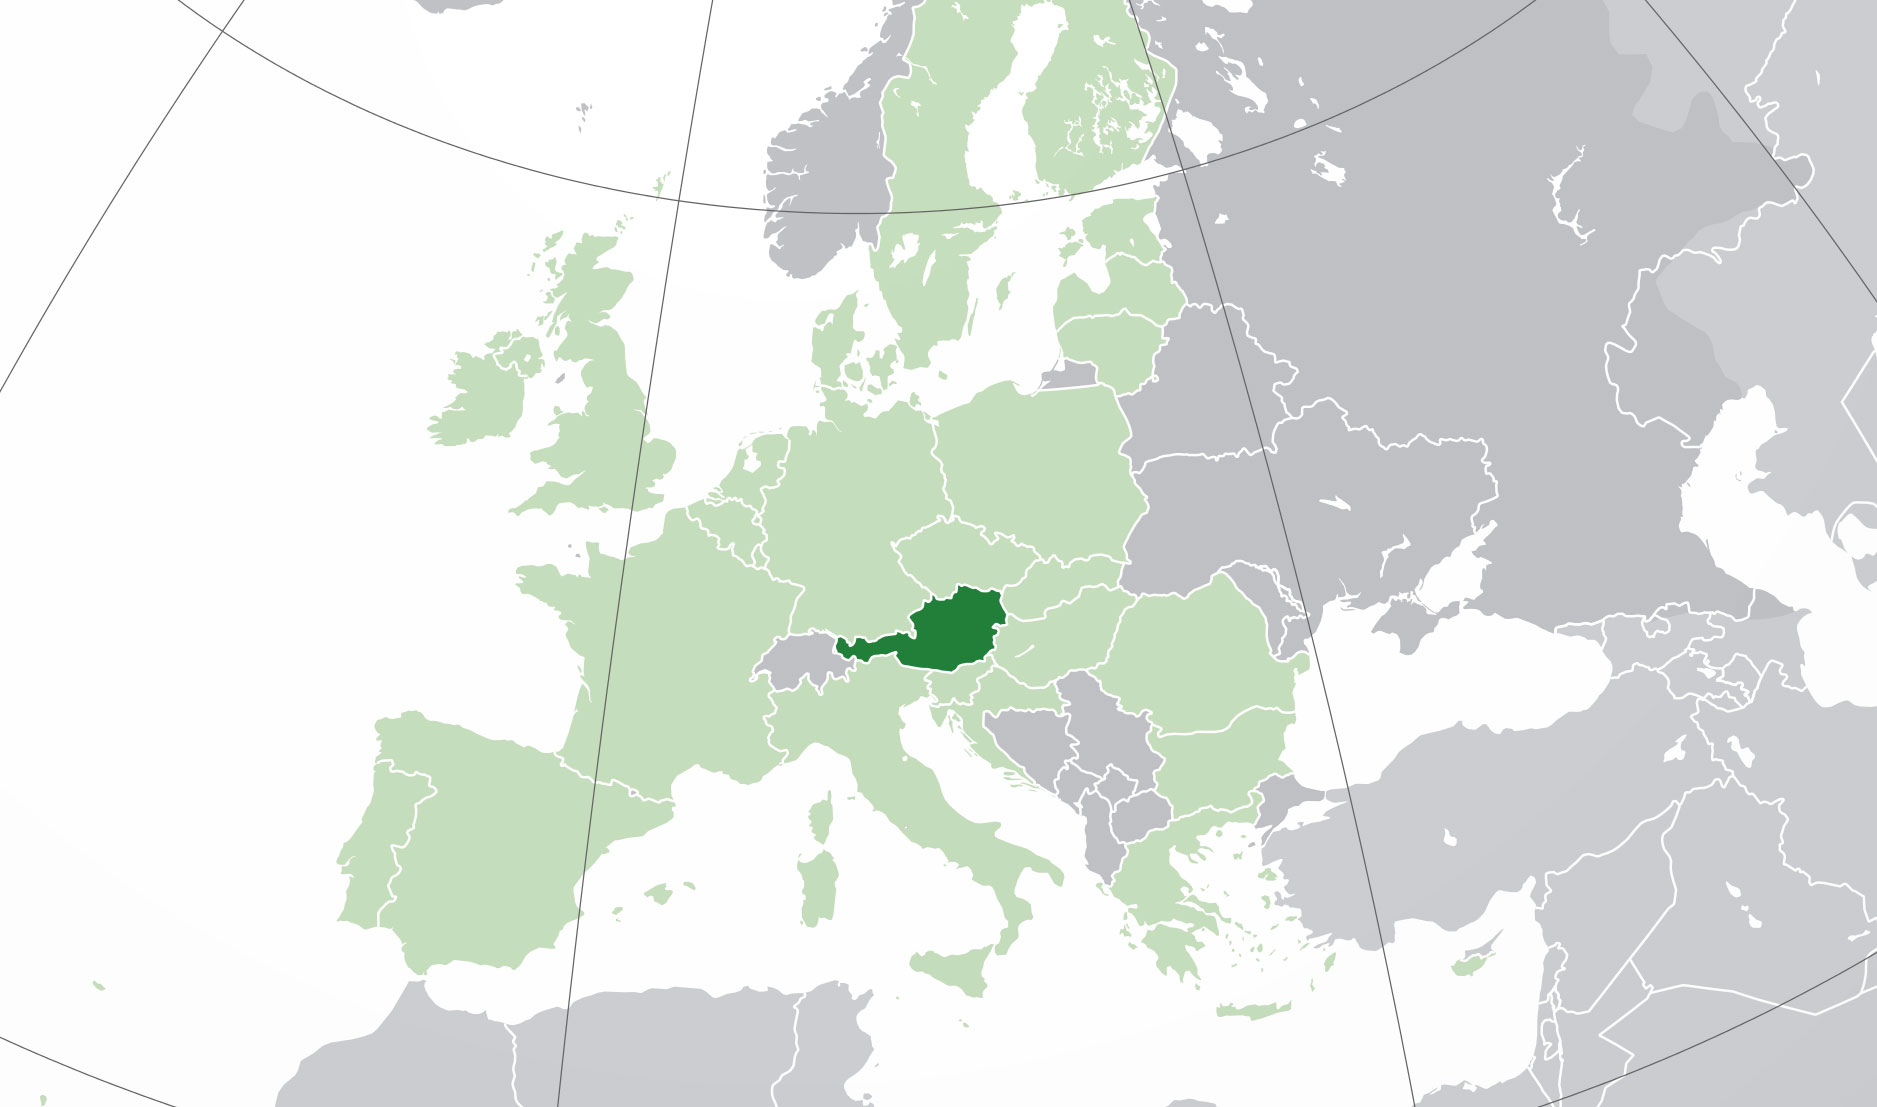 A map of Austria and nearby countries